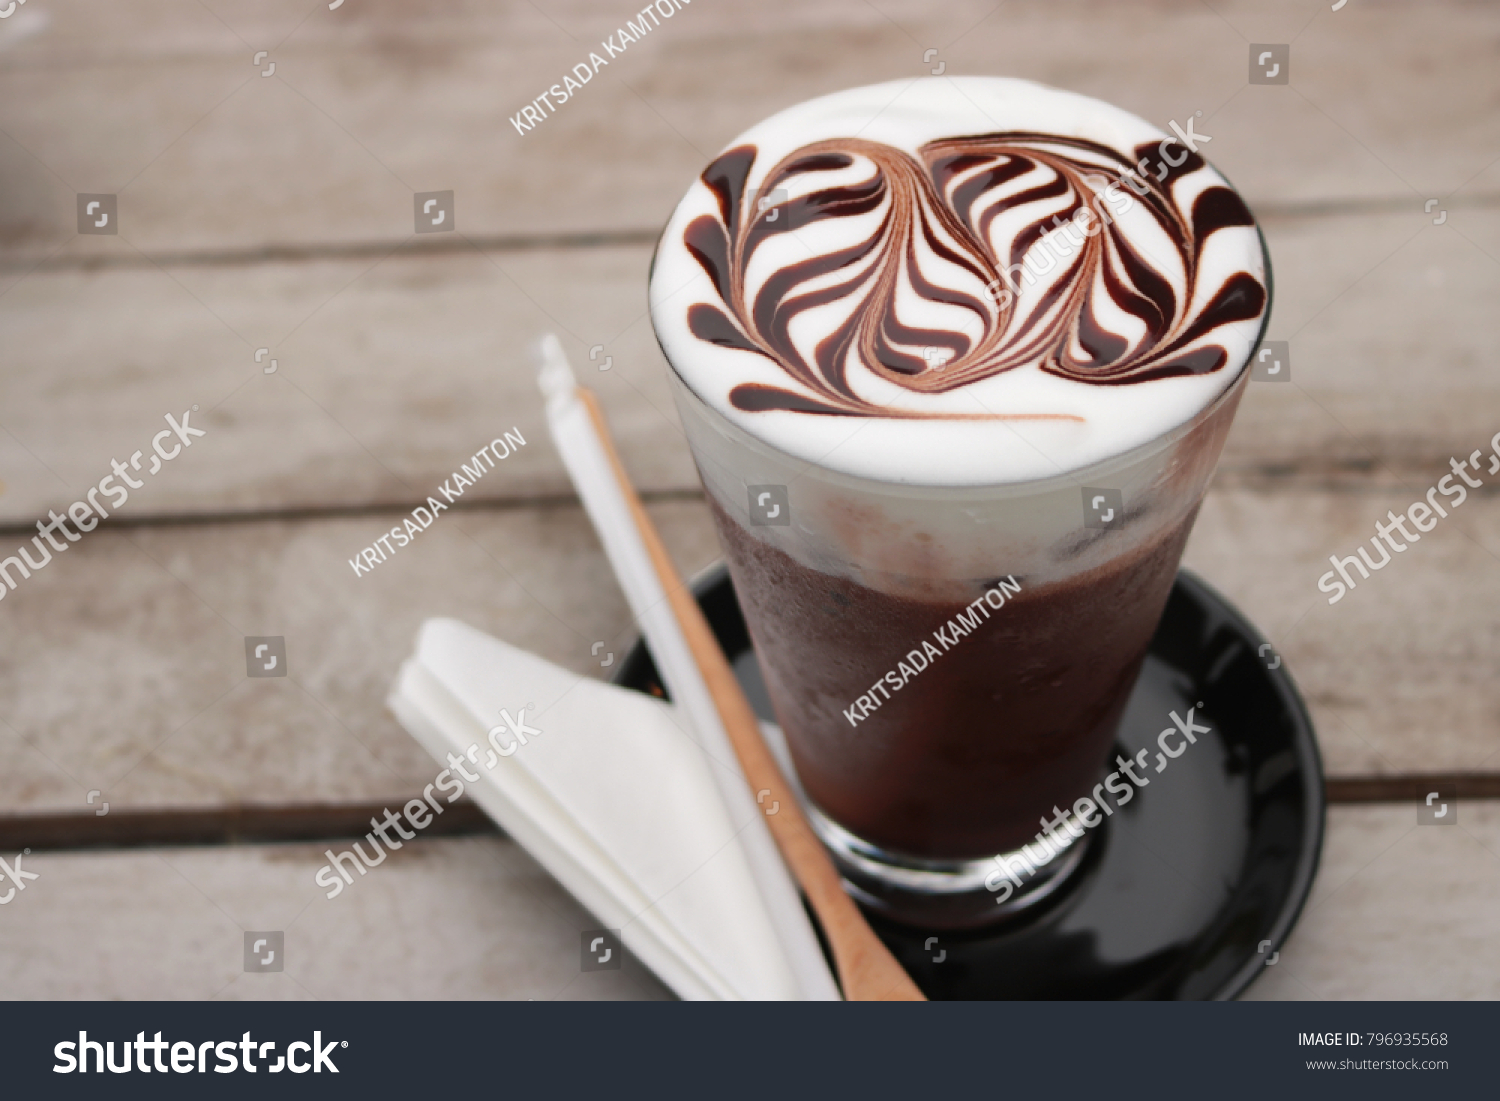 iced mocha coffee. Mocha coffee put in ice in glass. Then make-up beautiful art on top. #796935568